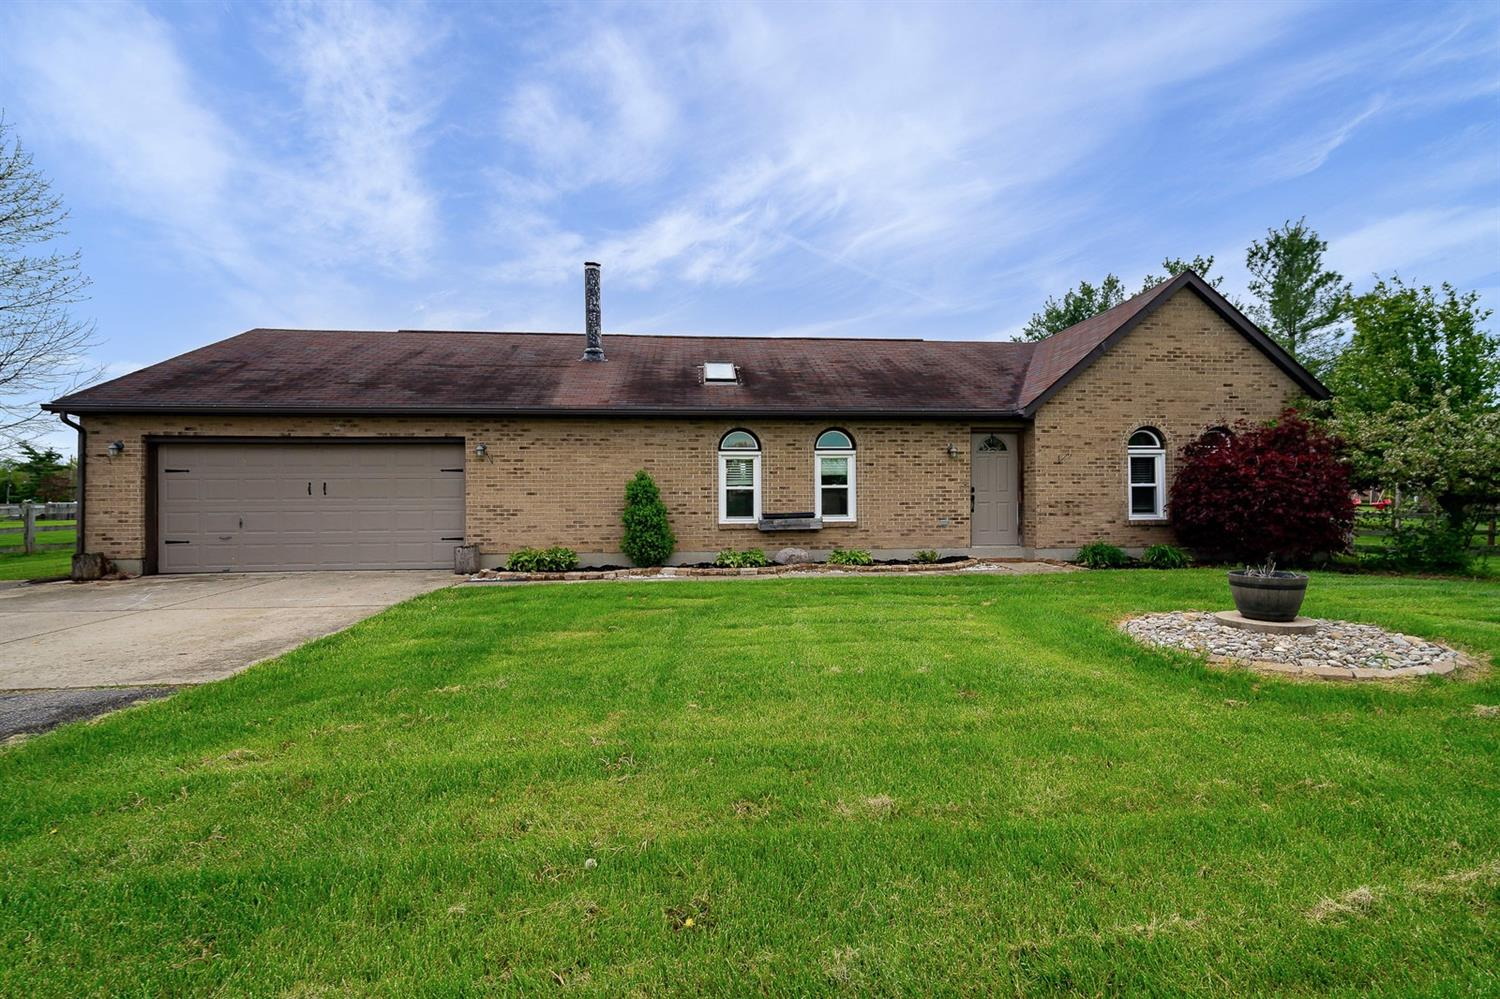 Property for sale at 3567 Weisenberger Road, Clearcreek Twp.,  Ohio 45036